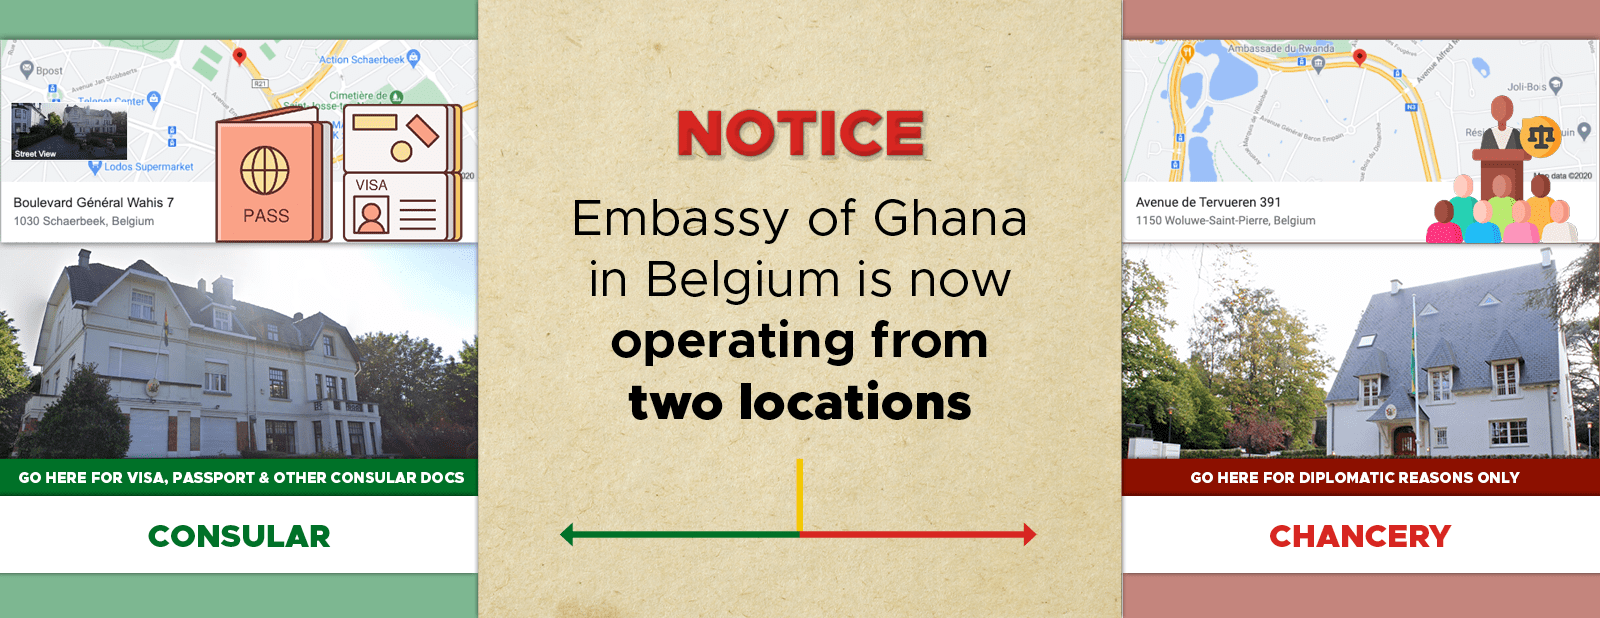 GHANA BRUSSELS TWO LOCATIONS